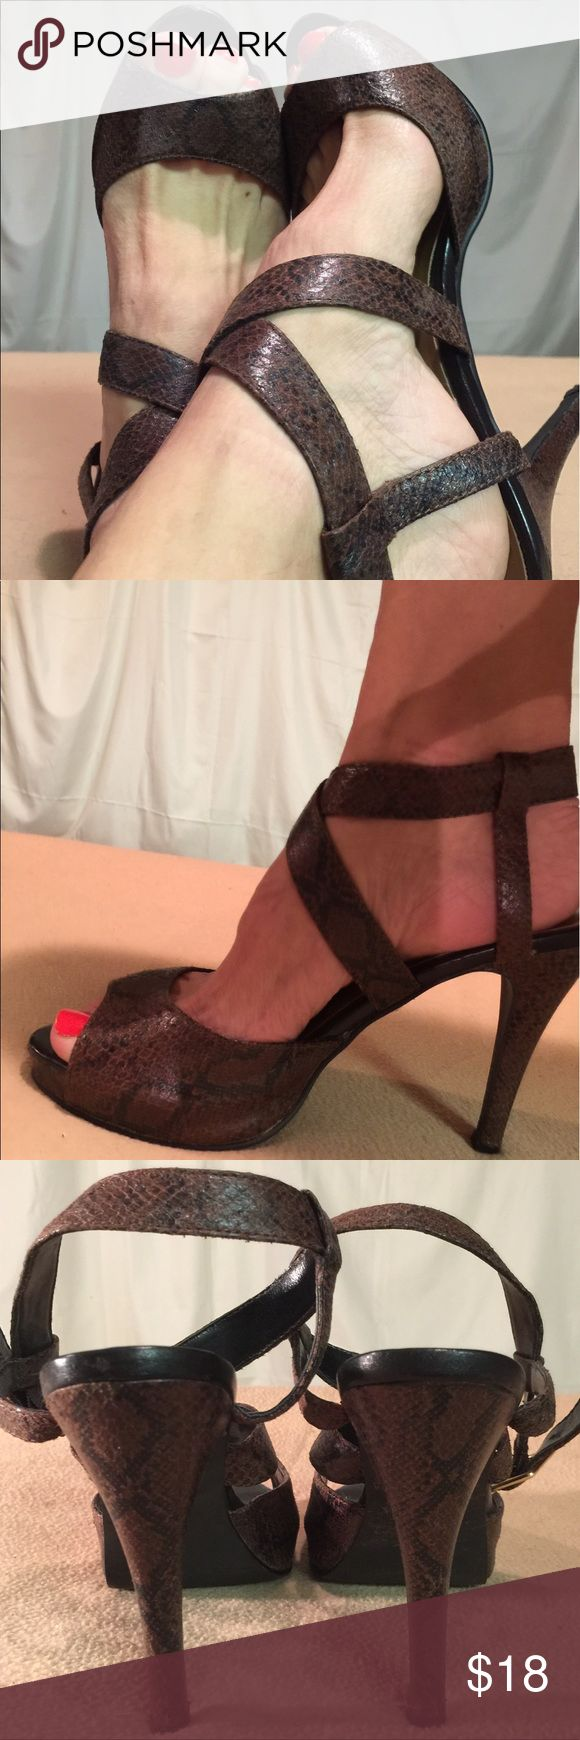 Michael Antonio Brown Snakeskin Ankle Strap Heels These shoes have been Very Gently Worn and are in EXCELLENT CONDITION. The heel height of this shoe is 4.5 inches tall. Michael Antonio Shoes Sandals